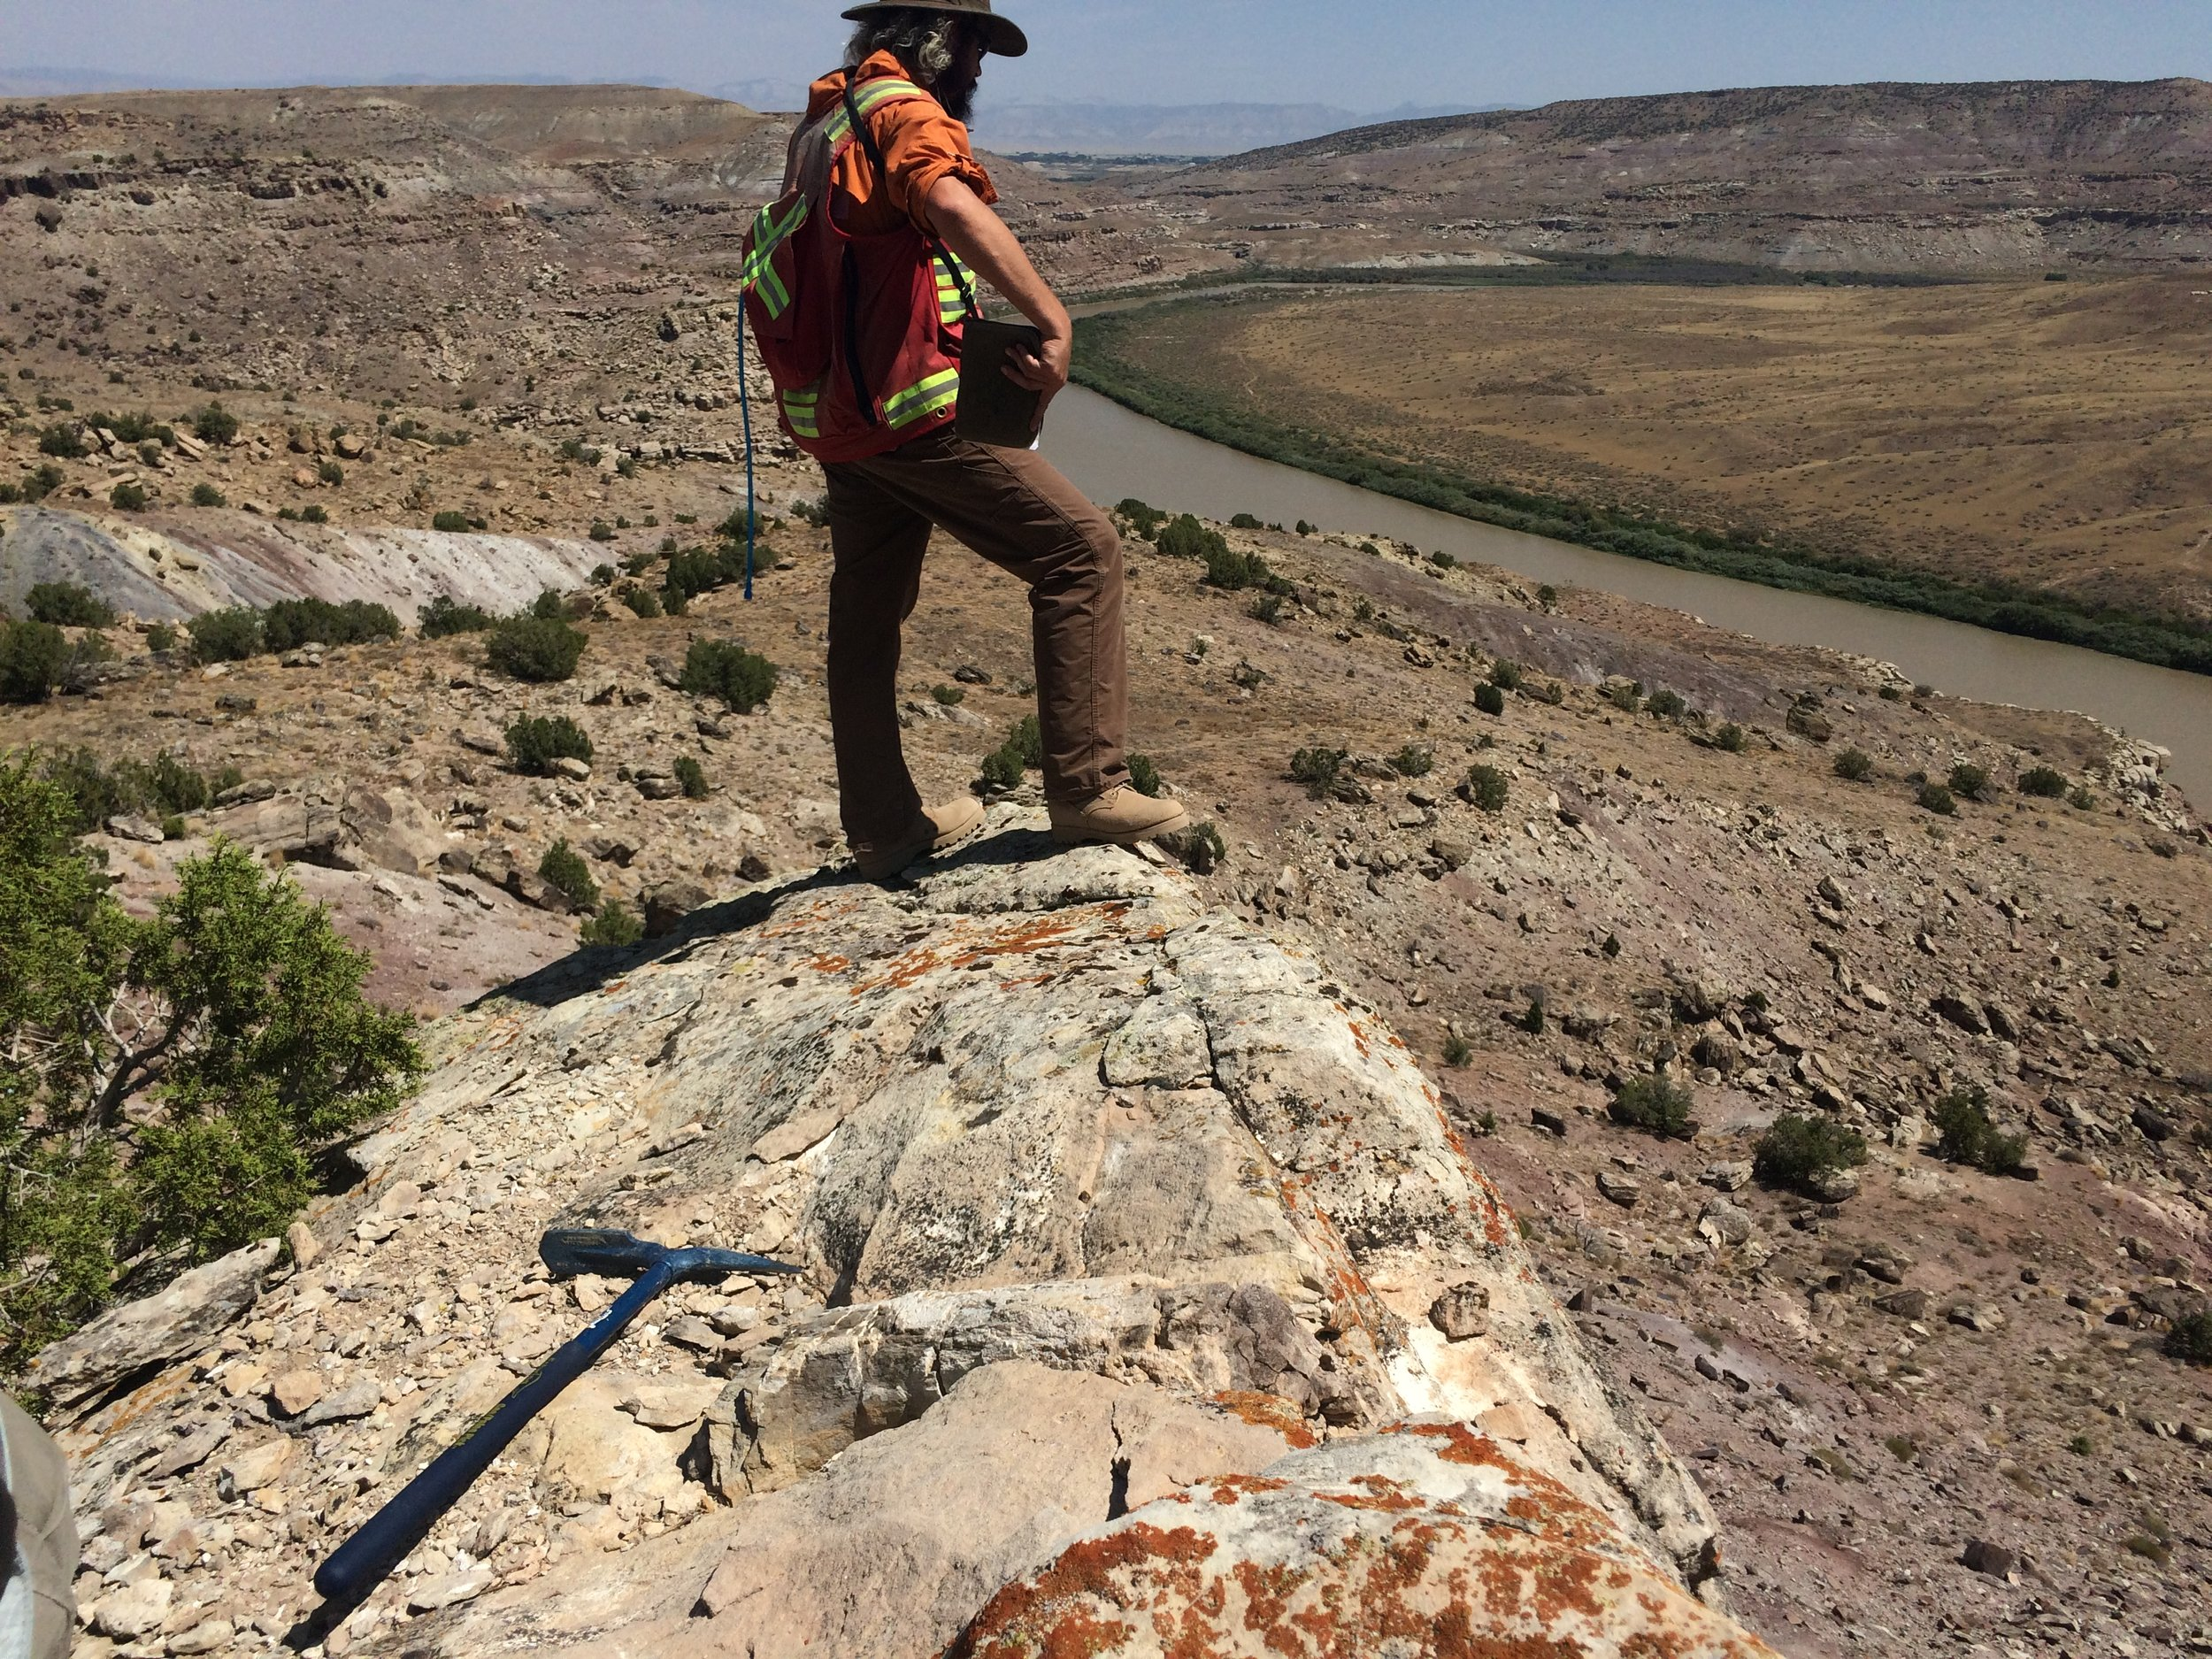 Earth Science Lecture Series - Minerals, Faults, and the Uncompaghre Plateau